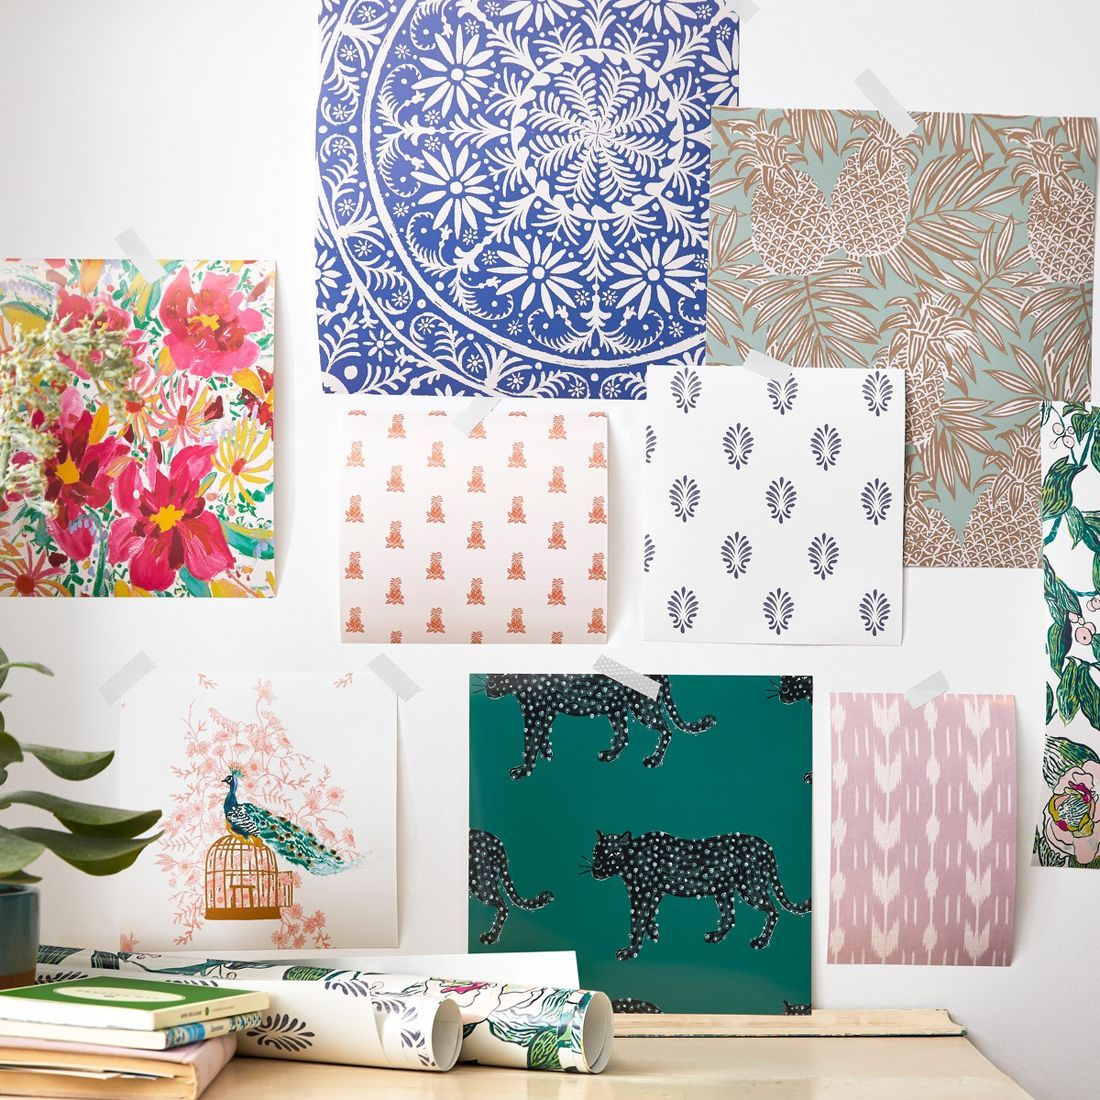 Shop for wallpaper at Target. Find textured, beadboard